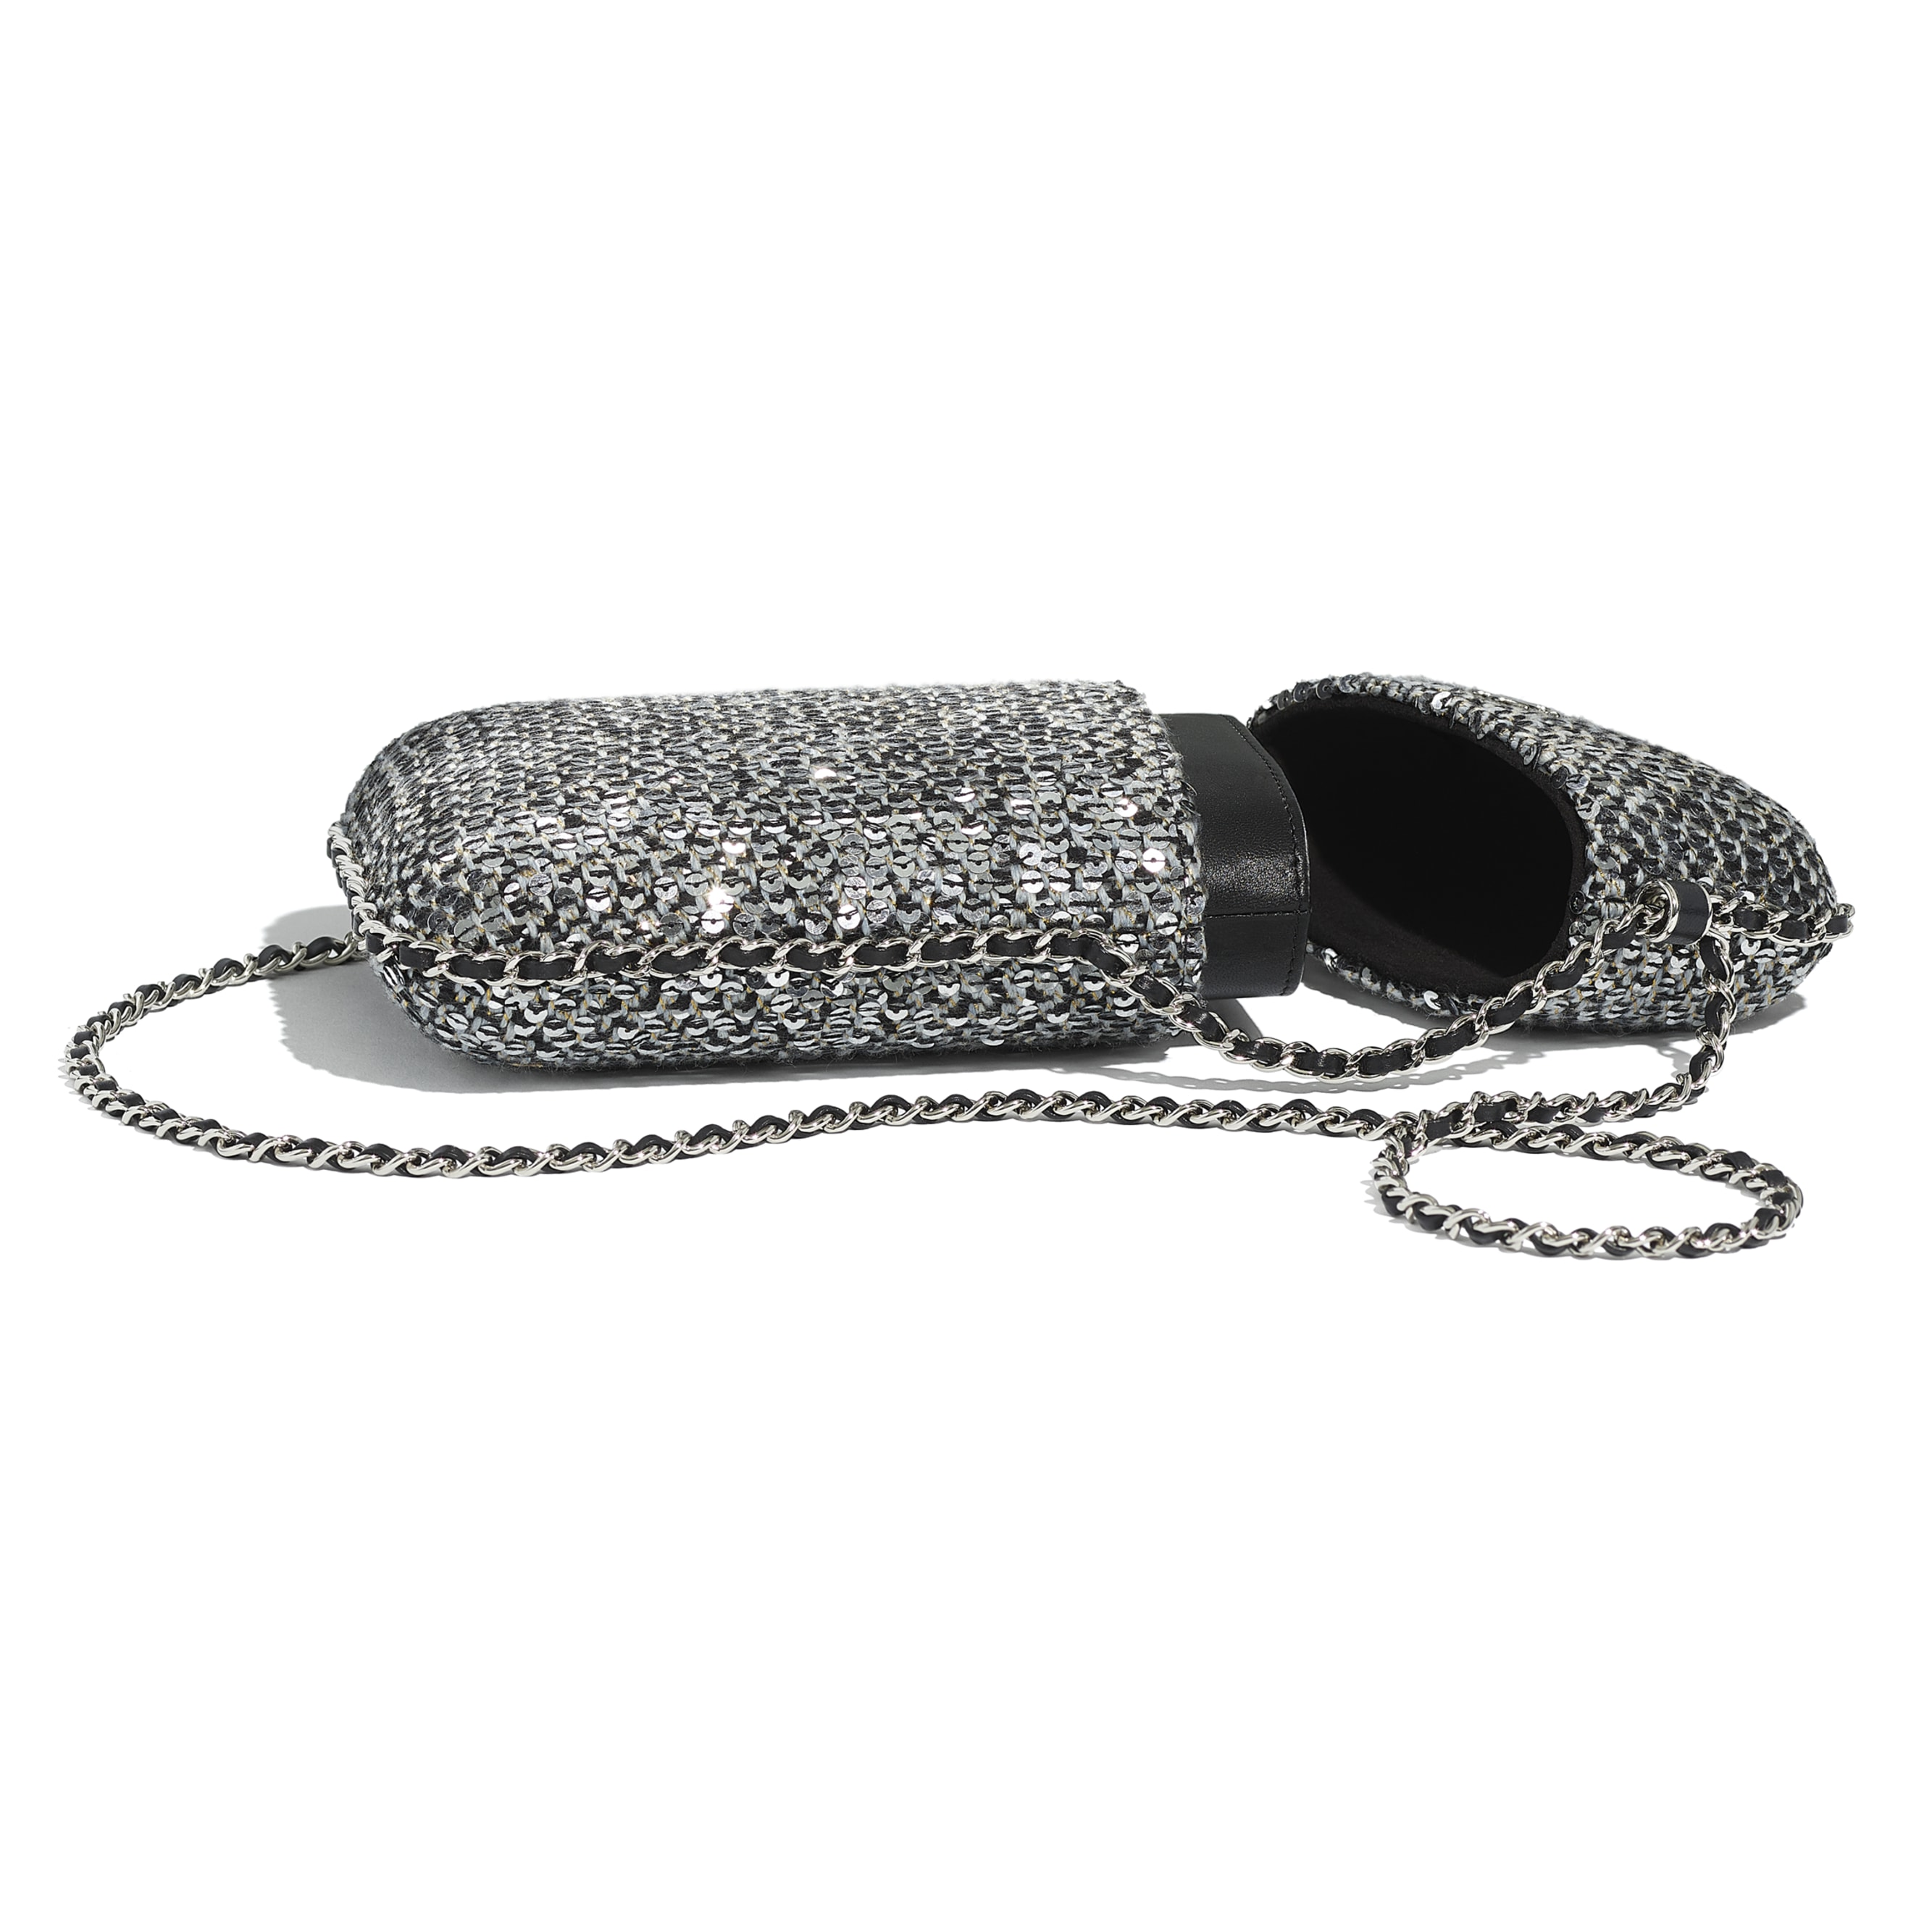 Clutch With Chain - Silver, Black & Gold - Tweed, Sequins & Silver-Tone Metal - CHANEL - Extra view - see standard sized version